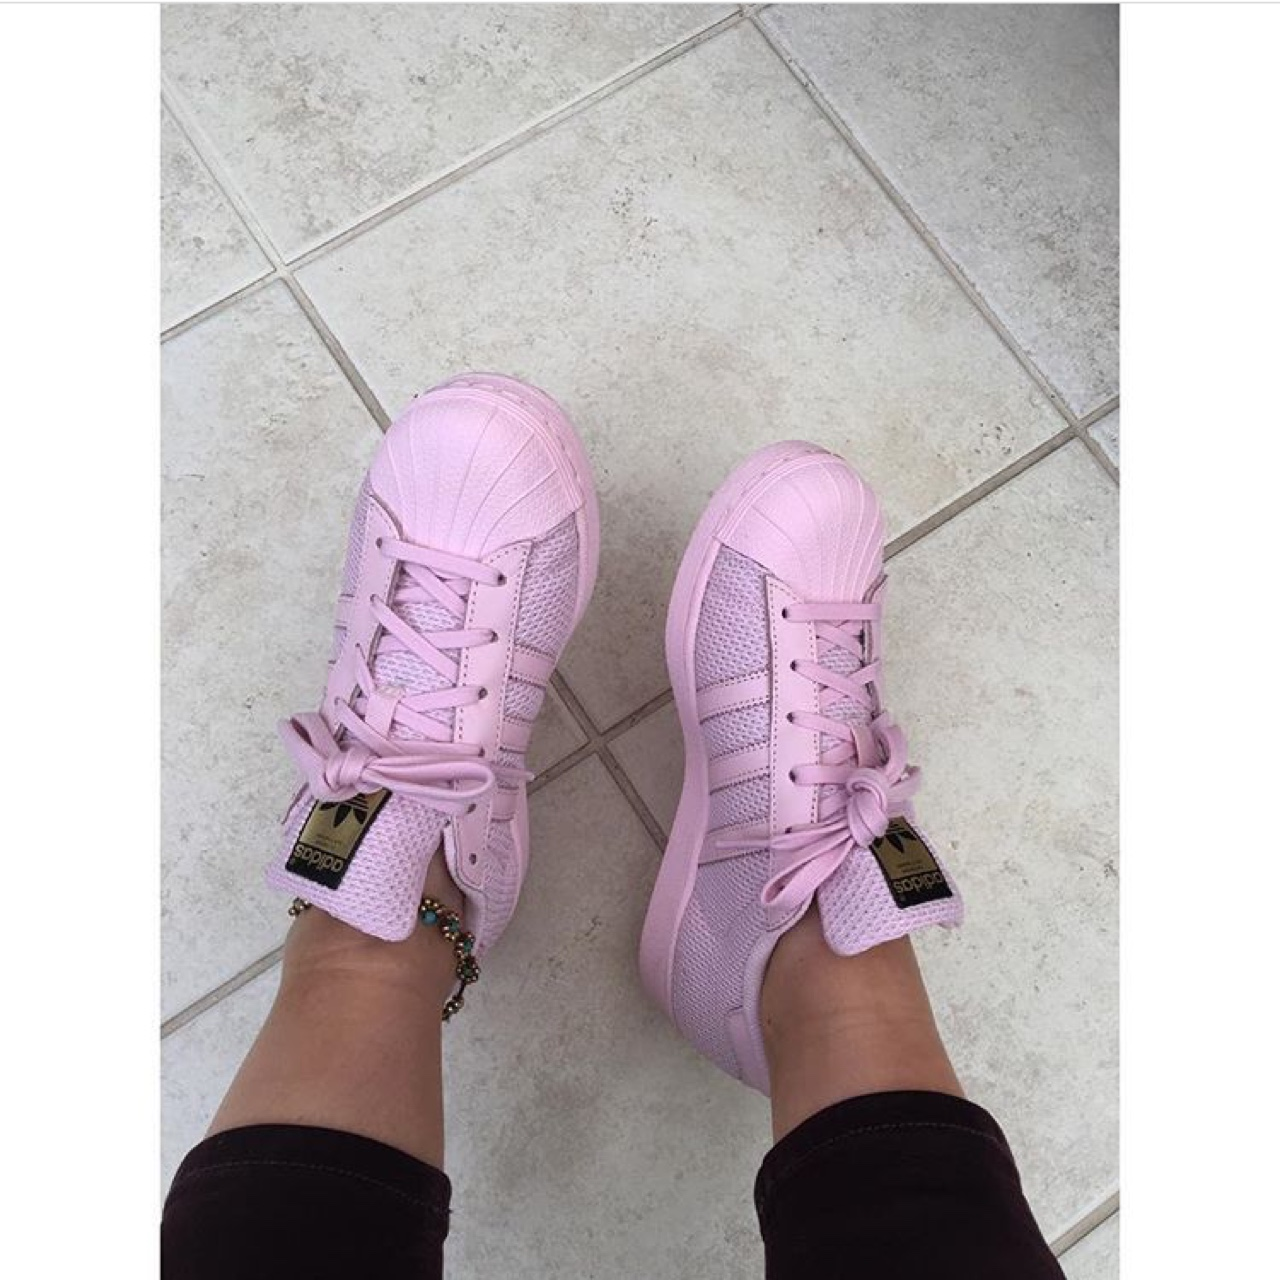 Listed on Depop by chart__x